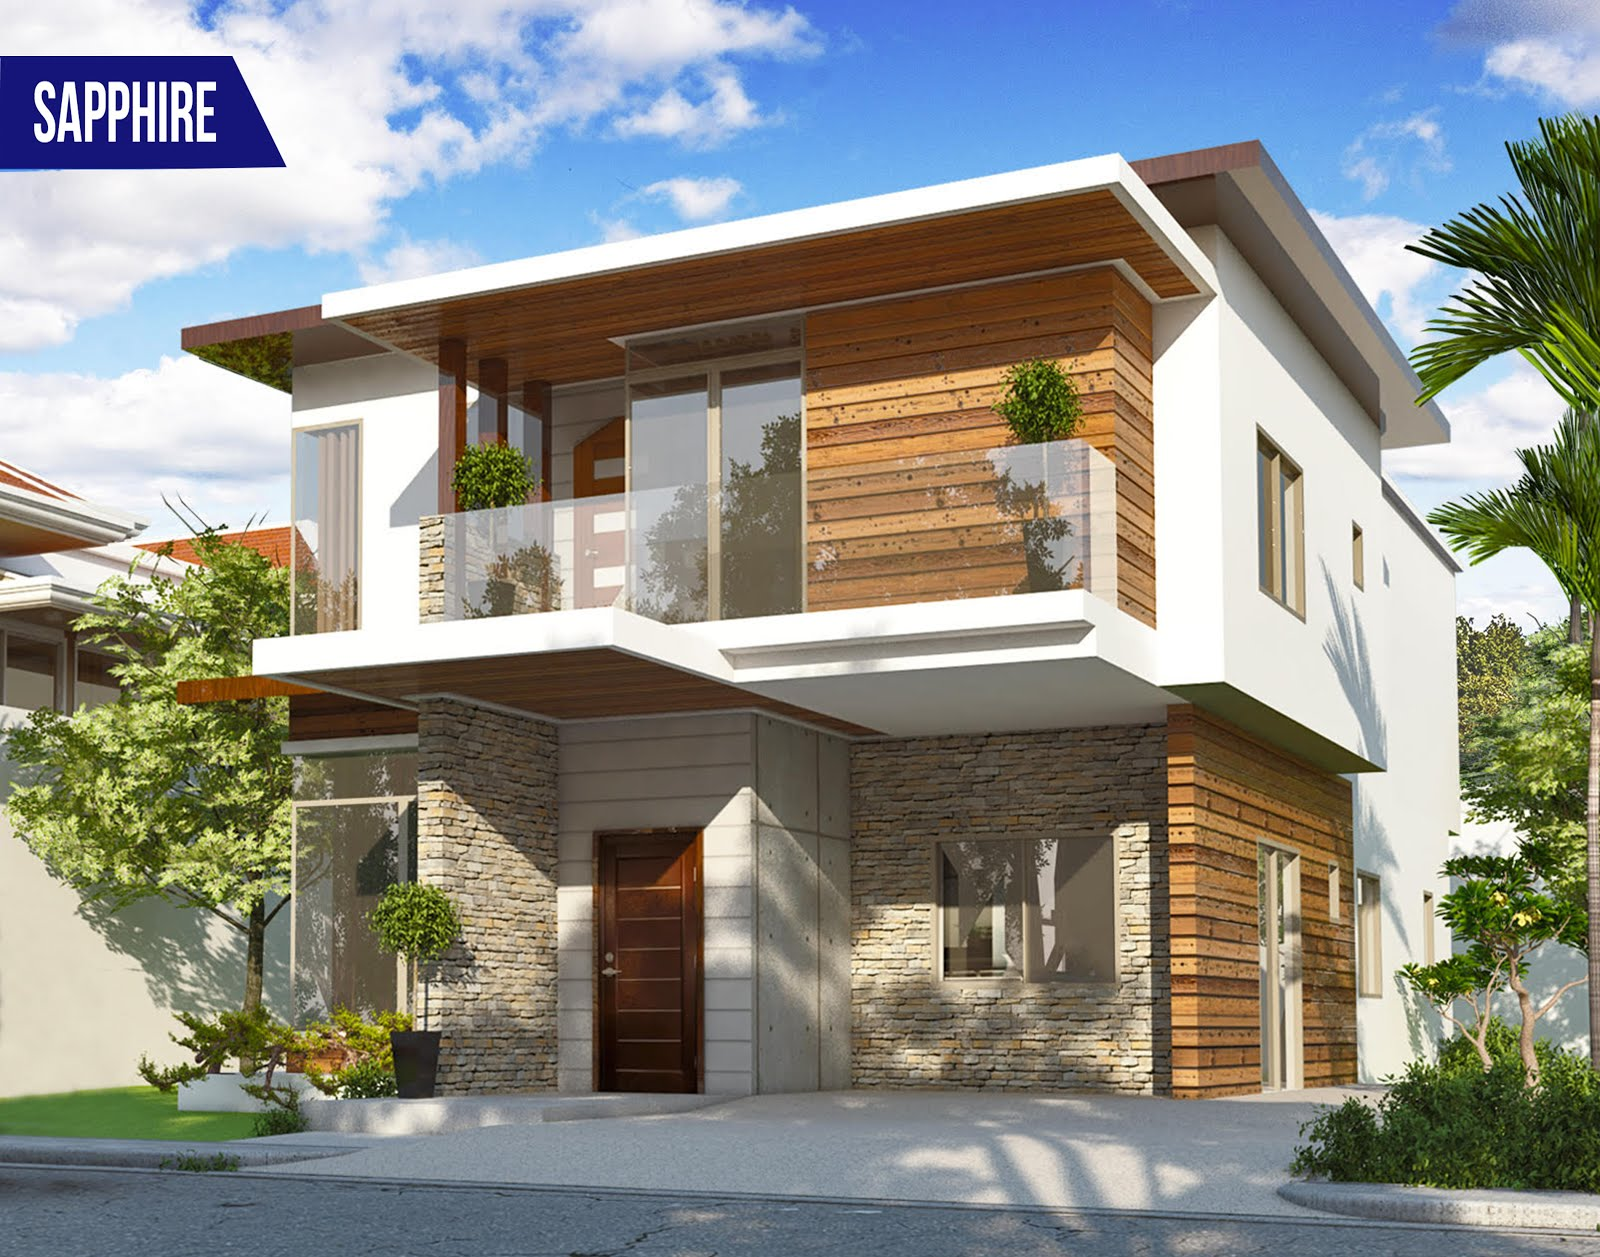 A smart philippine house builder the basics of latest for New latest house design